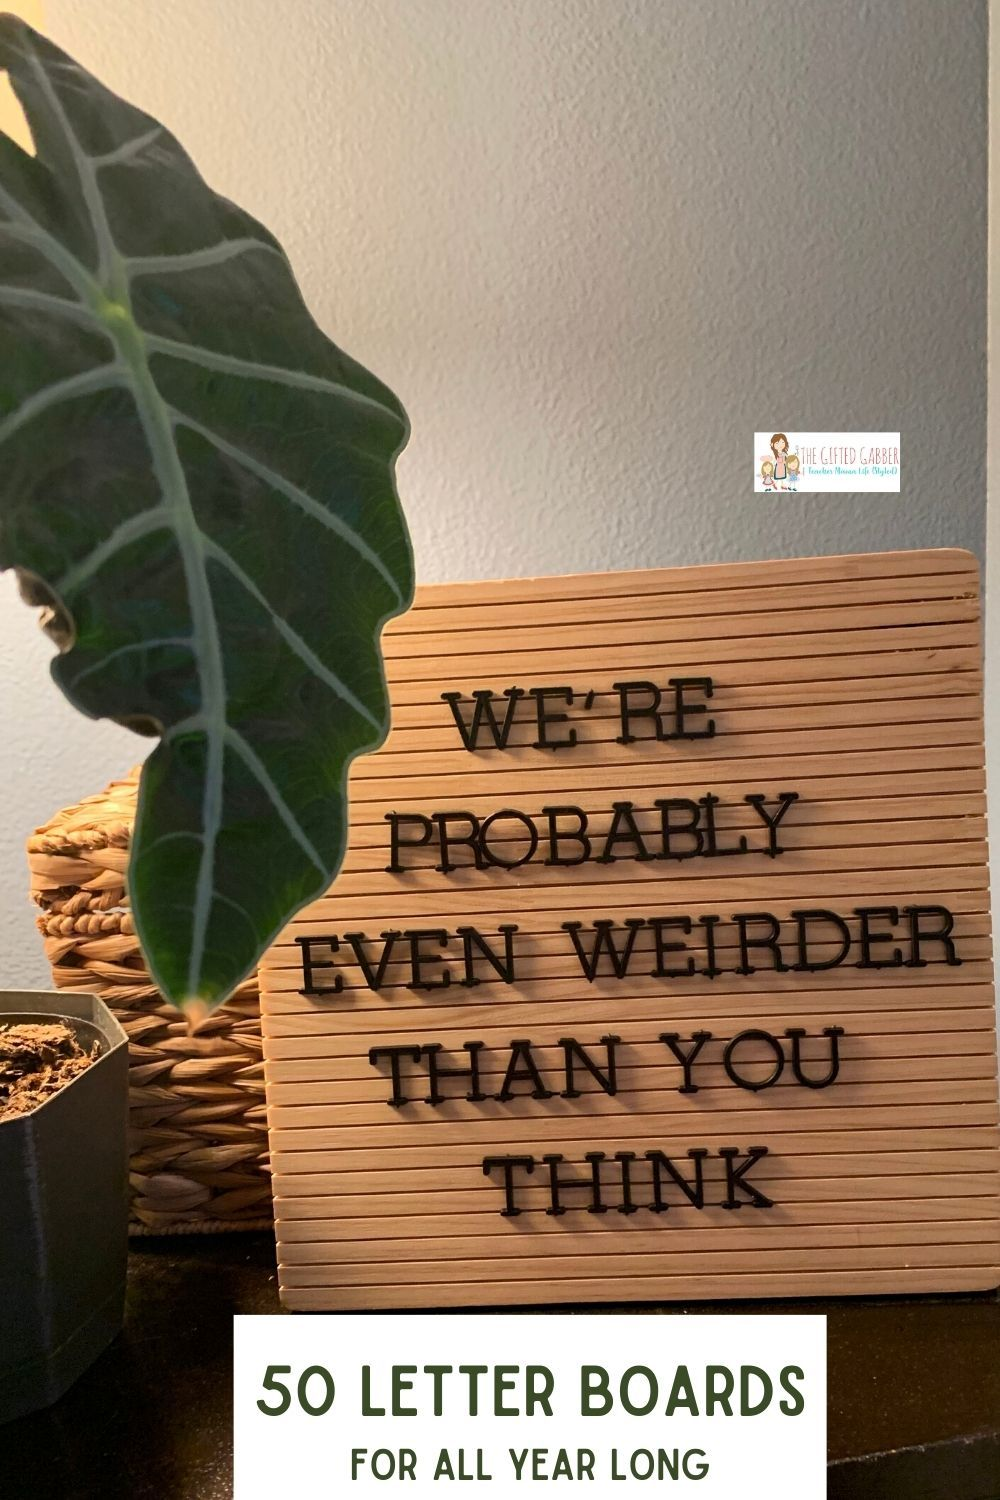 Funny Letter Boards for All Year Long